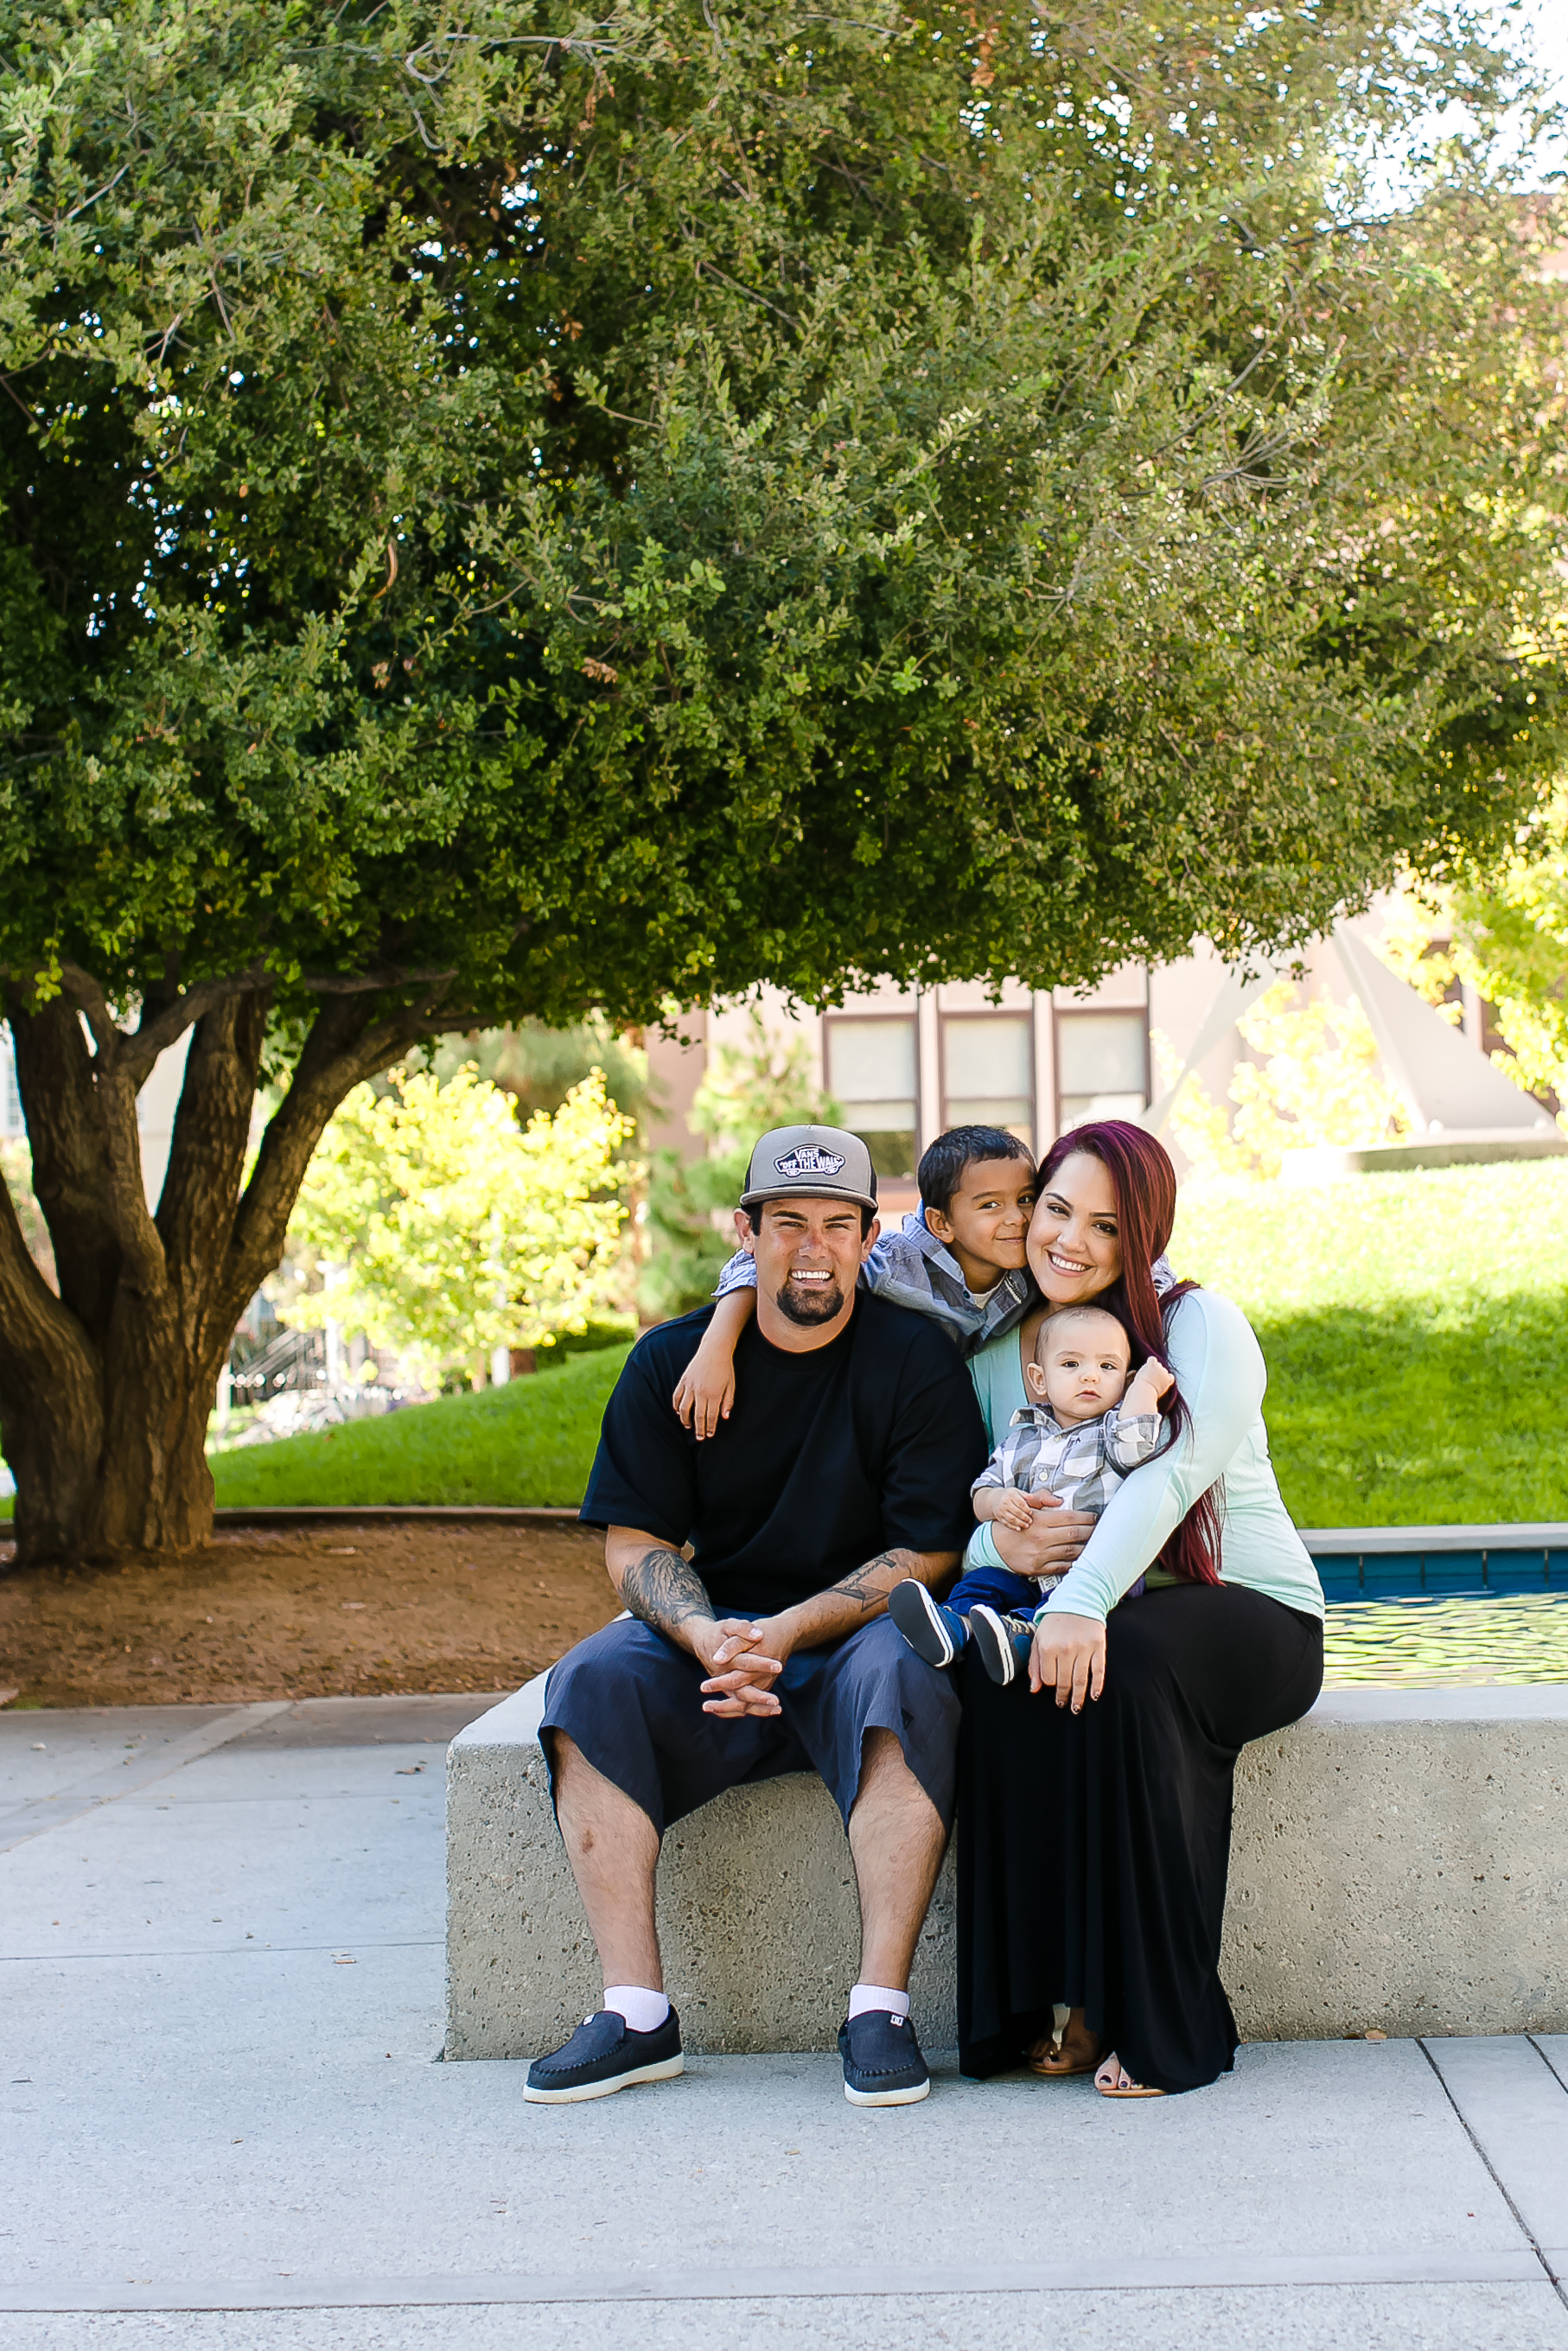 Chapman University, Orange County Family Portrait Photographer, Gina Holt Photography, Brothers, Chase, Ryan, Los Angeles Lifestyle Family Photos, Outdoor Family Pictures, OC Baby photography, Childrens Photographer Orange County, Kids photos LA, Family, casual, relaxed, fun, lifestyle, love, Los Angeles Family Photographer, Orange County Family Photographer, siblings, brother, sister, mother and daughter, father and son, mother and son, father and daughters, babies, what to wear, newborn photography, maternity photography, couples, Baby, grow with me, Fall Family Portraits, Spring family portraits, Winter family portraits, Summer family portraits, Baby photos, family portrait, family photography, family photographer, candid photography, newborn photography, newborn photographer, maternity photography, family photos, newborn baby photos, baby portraits, family portrait photography, family, portrait photographer, family photo shoot, infant photography, baby photographer, photography pricing, baby photoshoot, maternity photos, pregnancy photos, kids photos, portrait photographers, family photography prices, newborn pictures, family portrait photographer, children photos, Baby Photographers in Los Angeles CA, Family Portrait in Los Angeles CA, Family Portrait Photography in Los Angeles, professional portrait photography, professional photographers, new baby photos, professional family photos, best portrait photographers, toddler photography, best newborn photography, best family photographer, professional pregnancy photos, top portrait photographers, outdoor family portraits, baby photography at home, professional baby photos, find photographers, Family portrait pricing packages, Family portrait photography package, family portrait photography prices, family photo session prices, what to wear for a family session, tips on what to wear for family portraits, guide for a successful photo session with toddlers, photo session with toddlers